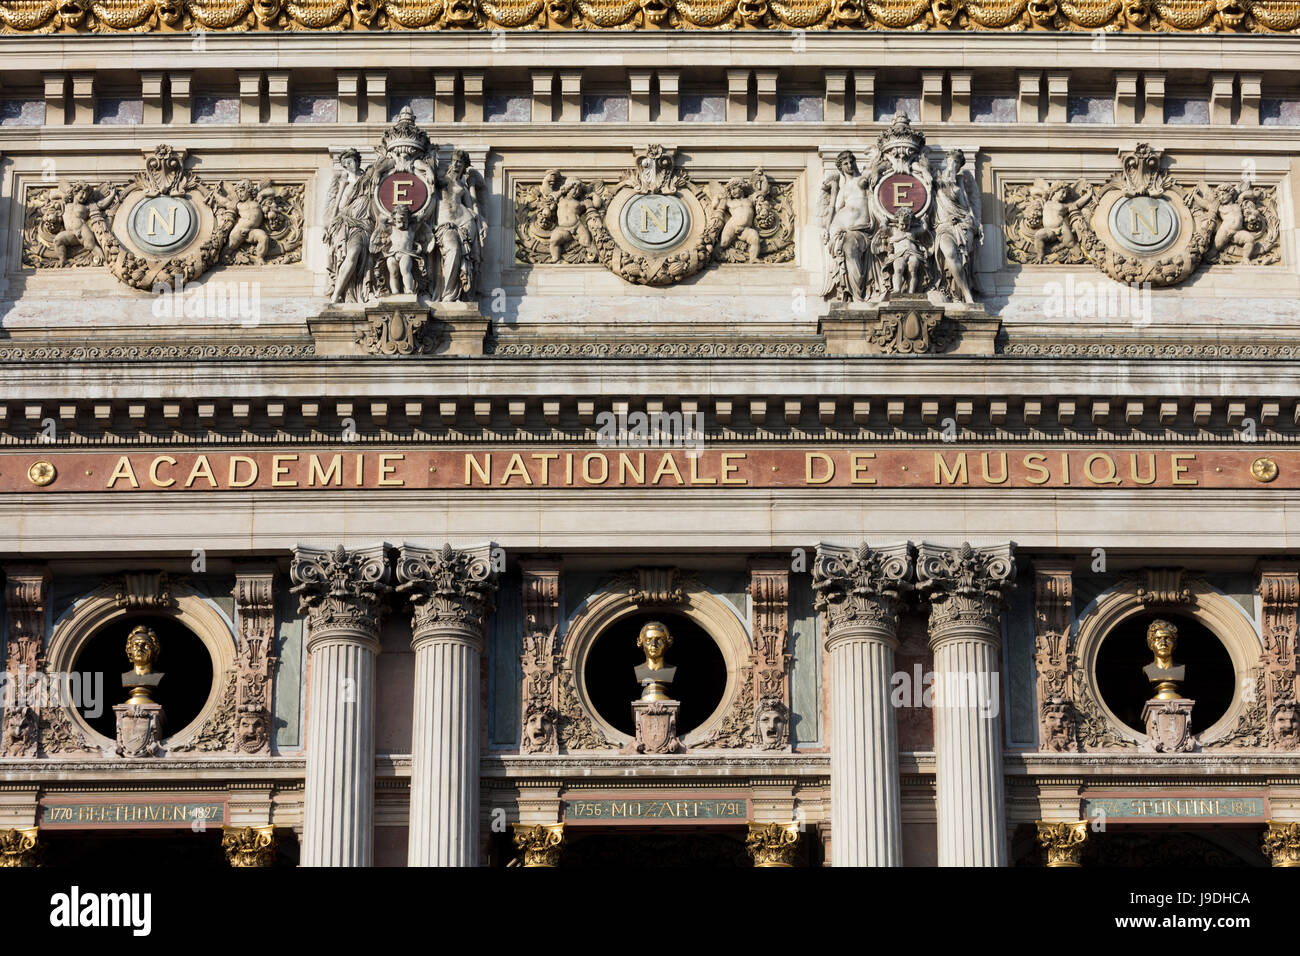 busts of Mozart, Beethoven and Spontini by Chabaud, facade, Palais Garnier Opera House, Paris, France - Stock Image